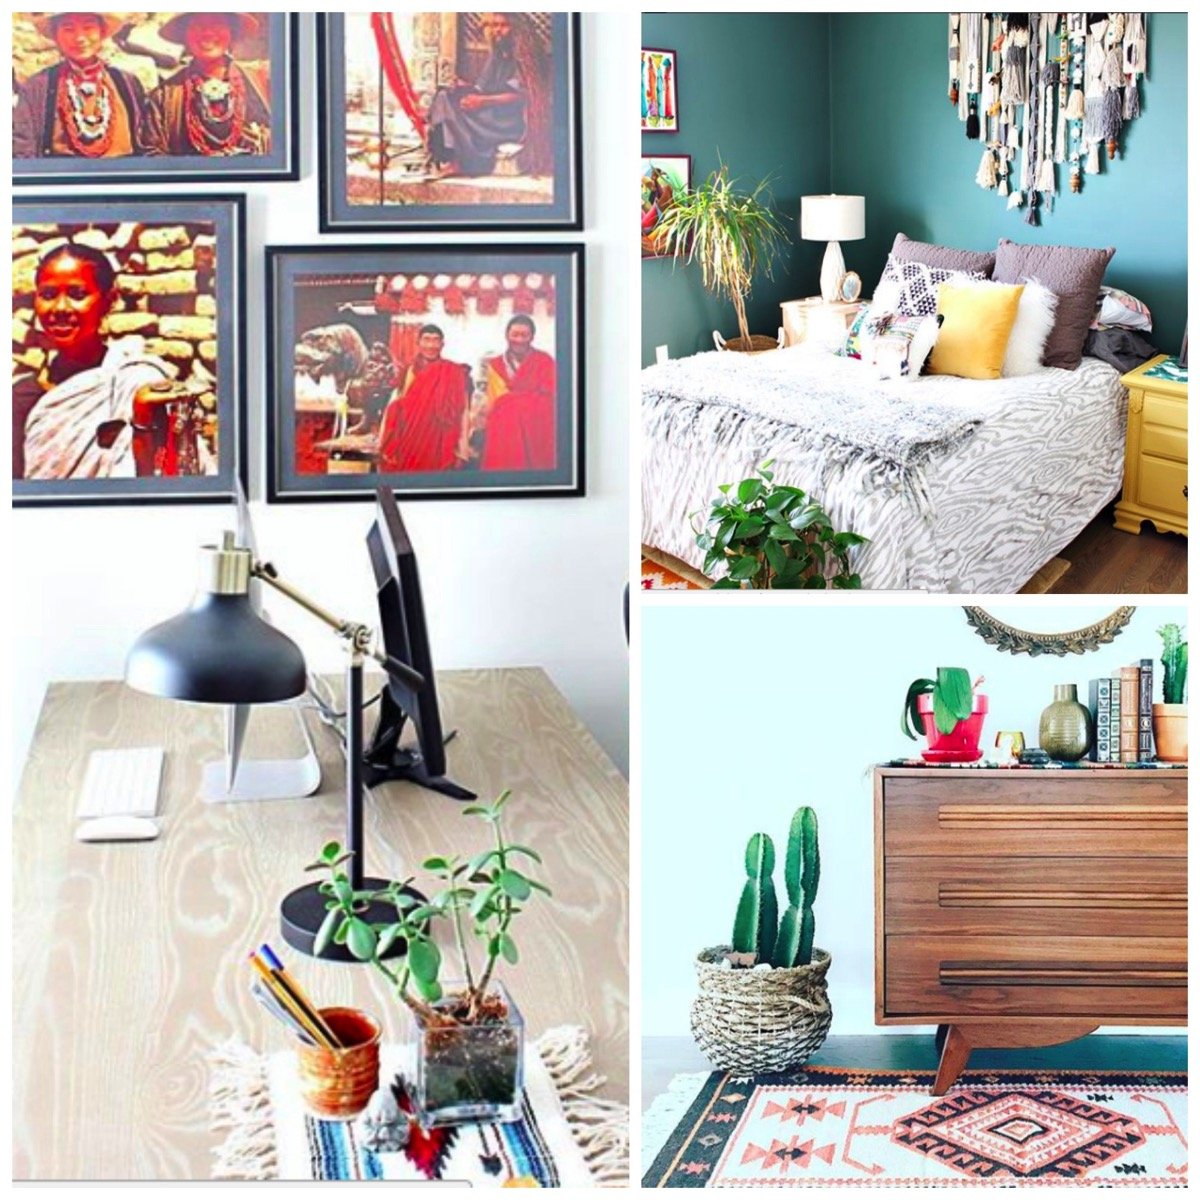 Eclectic home decor with texturs